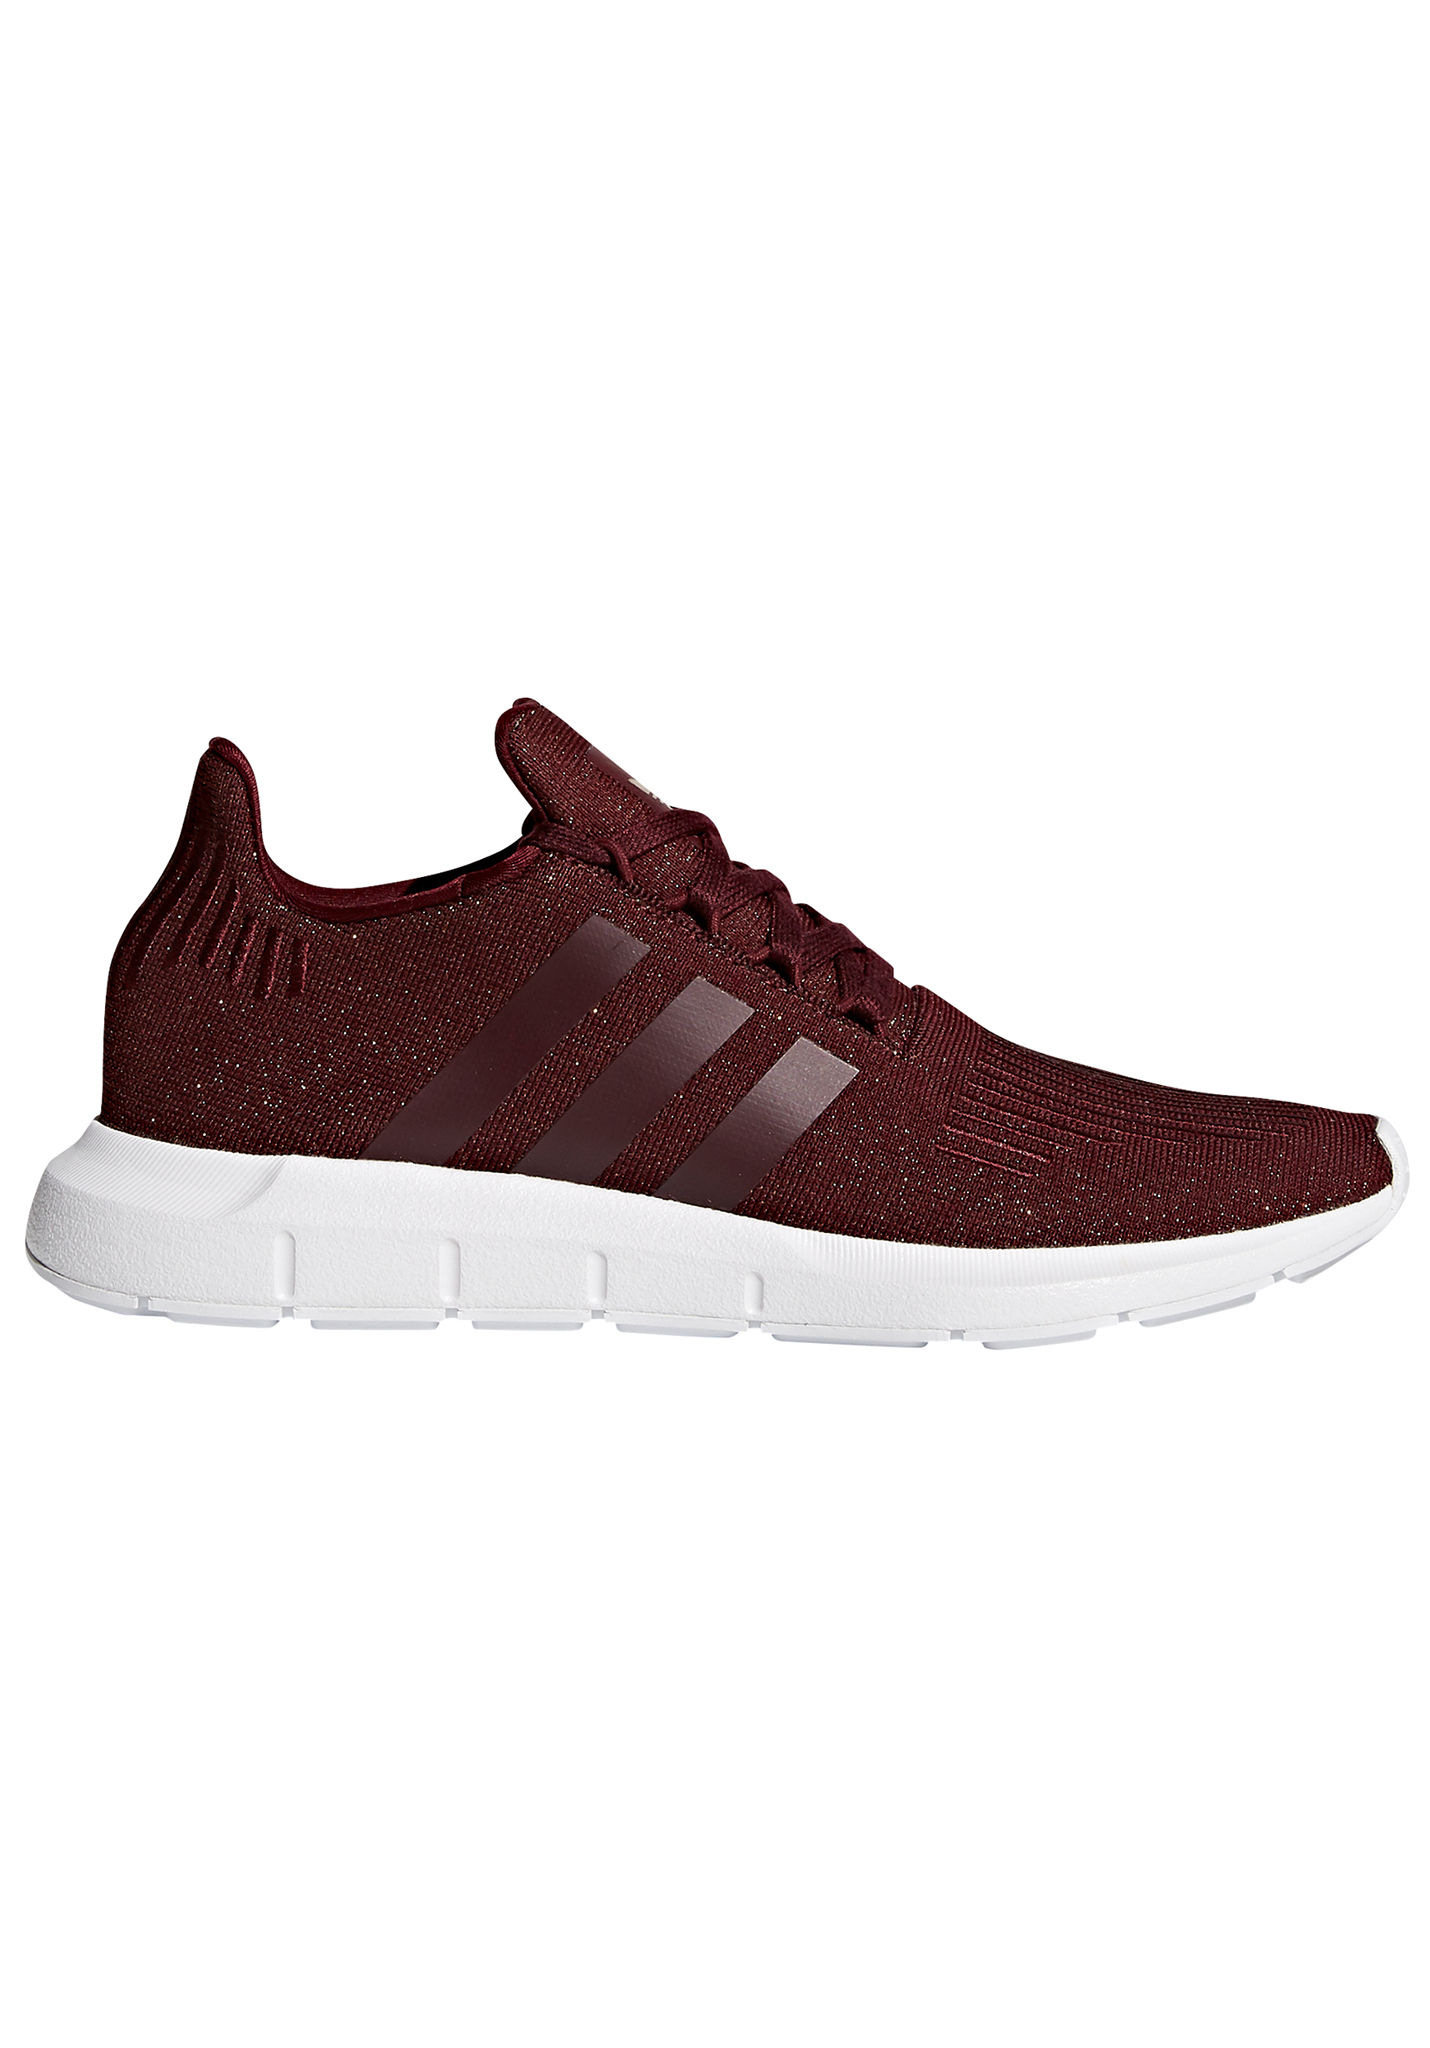 Originals Adidas Run Für Sneaker Swift Rot Damen vm80wPynON